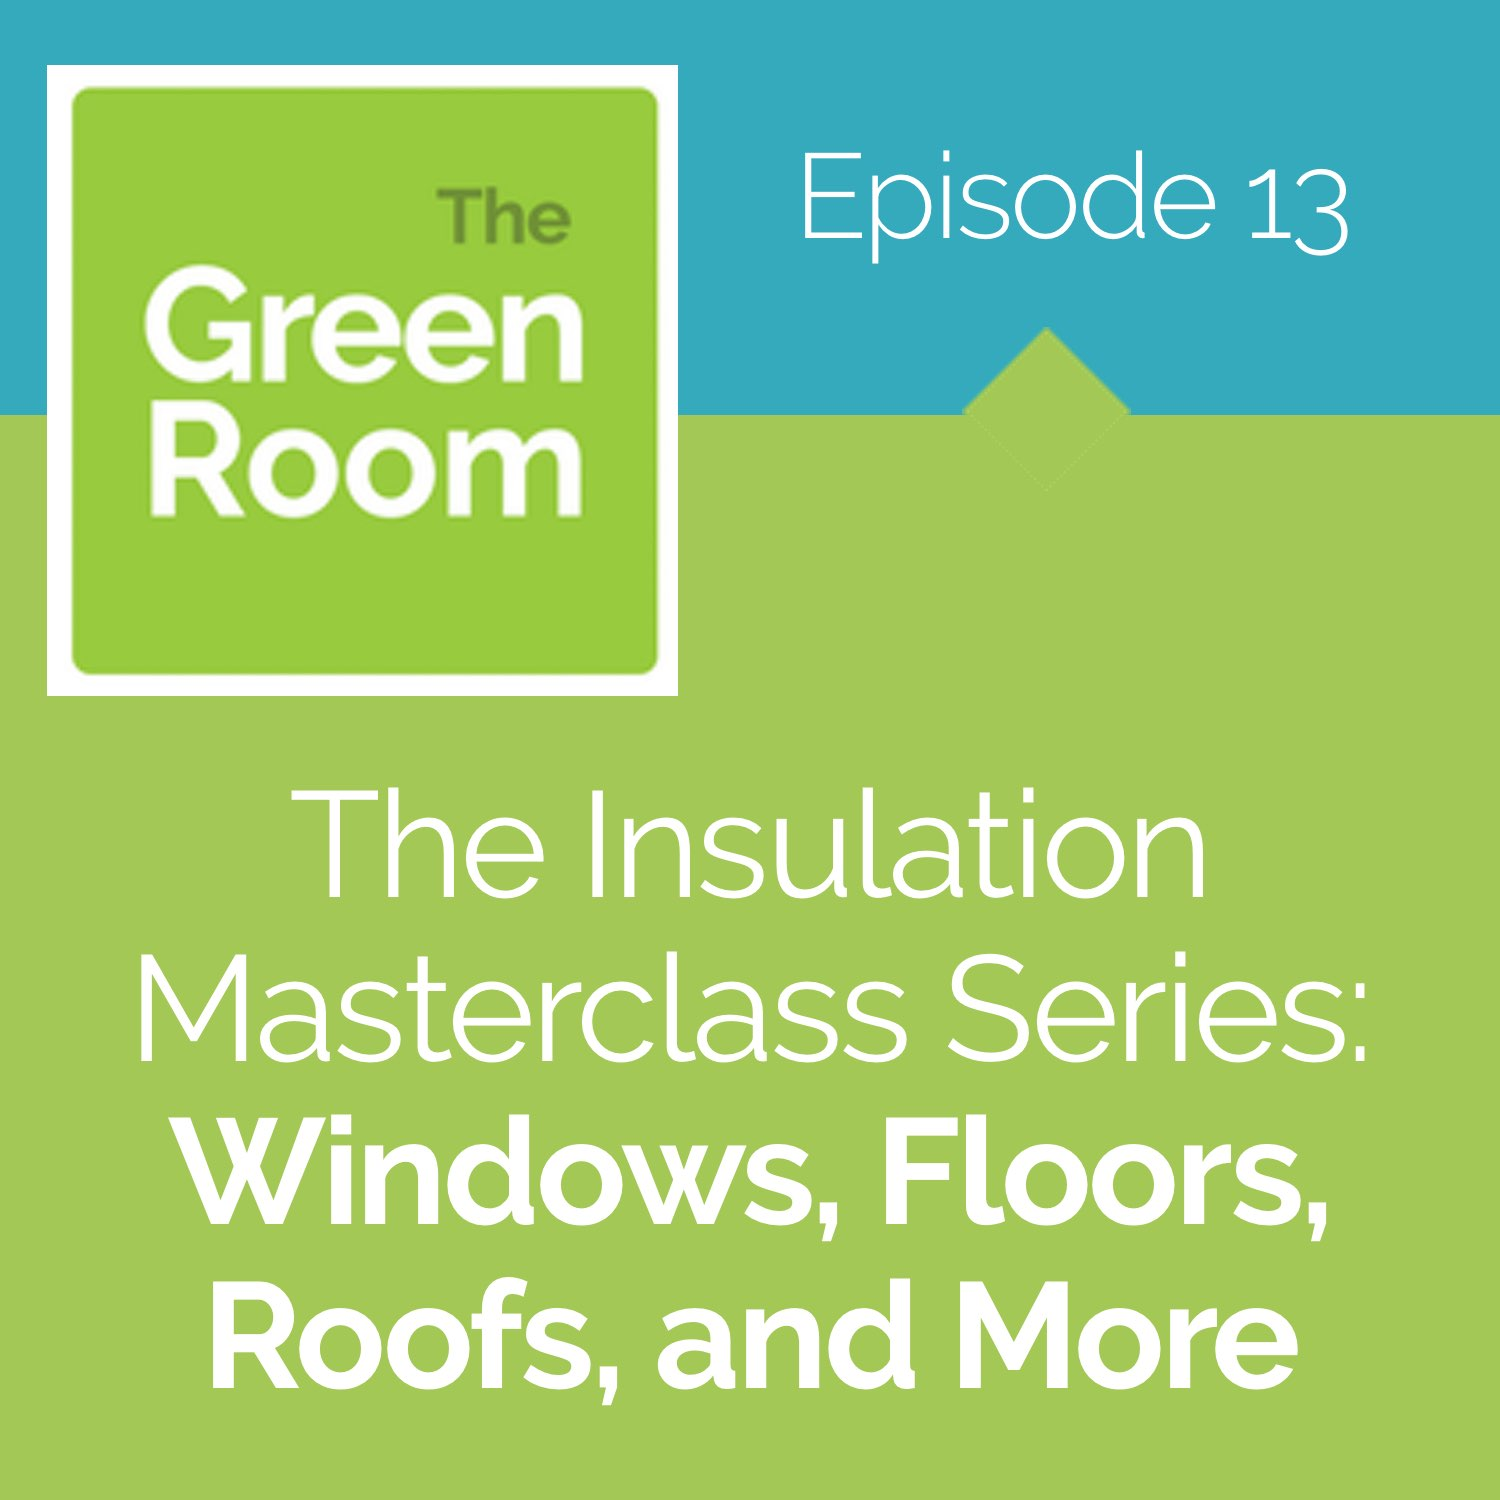 The Insulation Masterclass: Windows, Floors, Roofs, and More